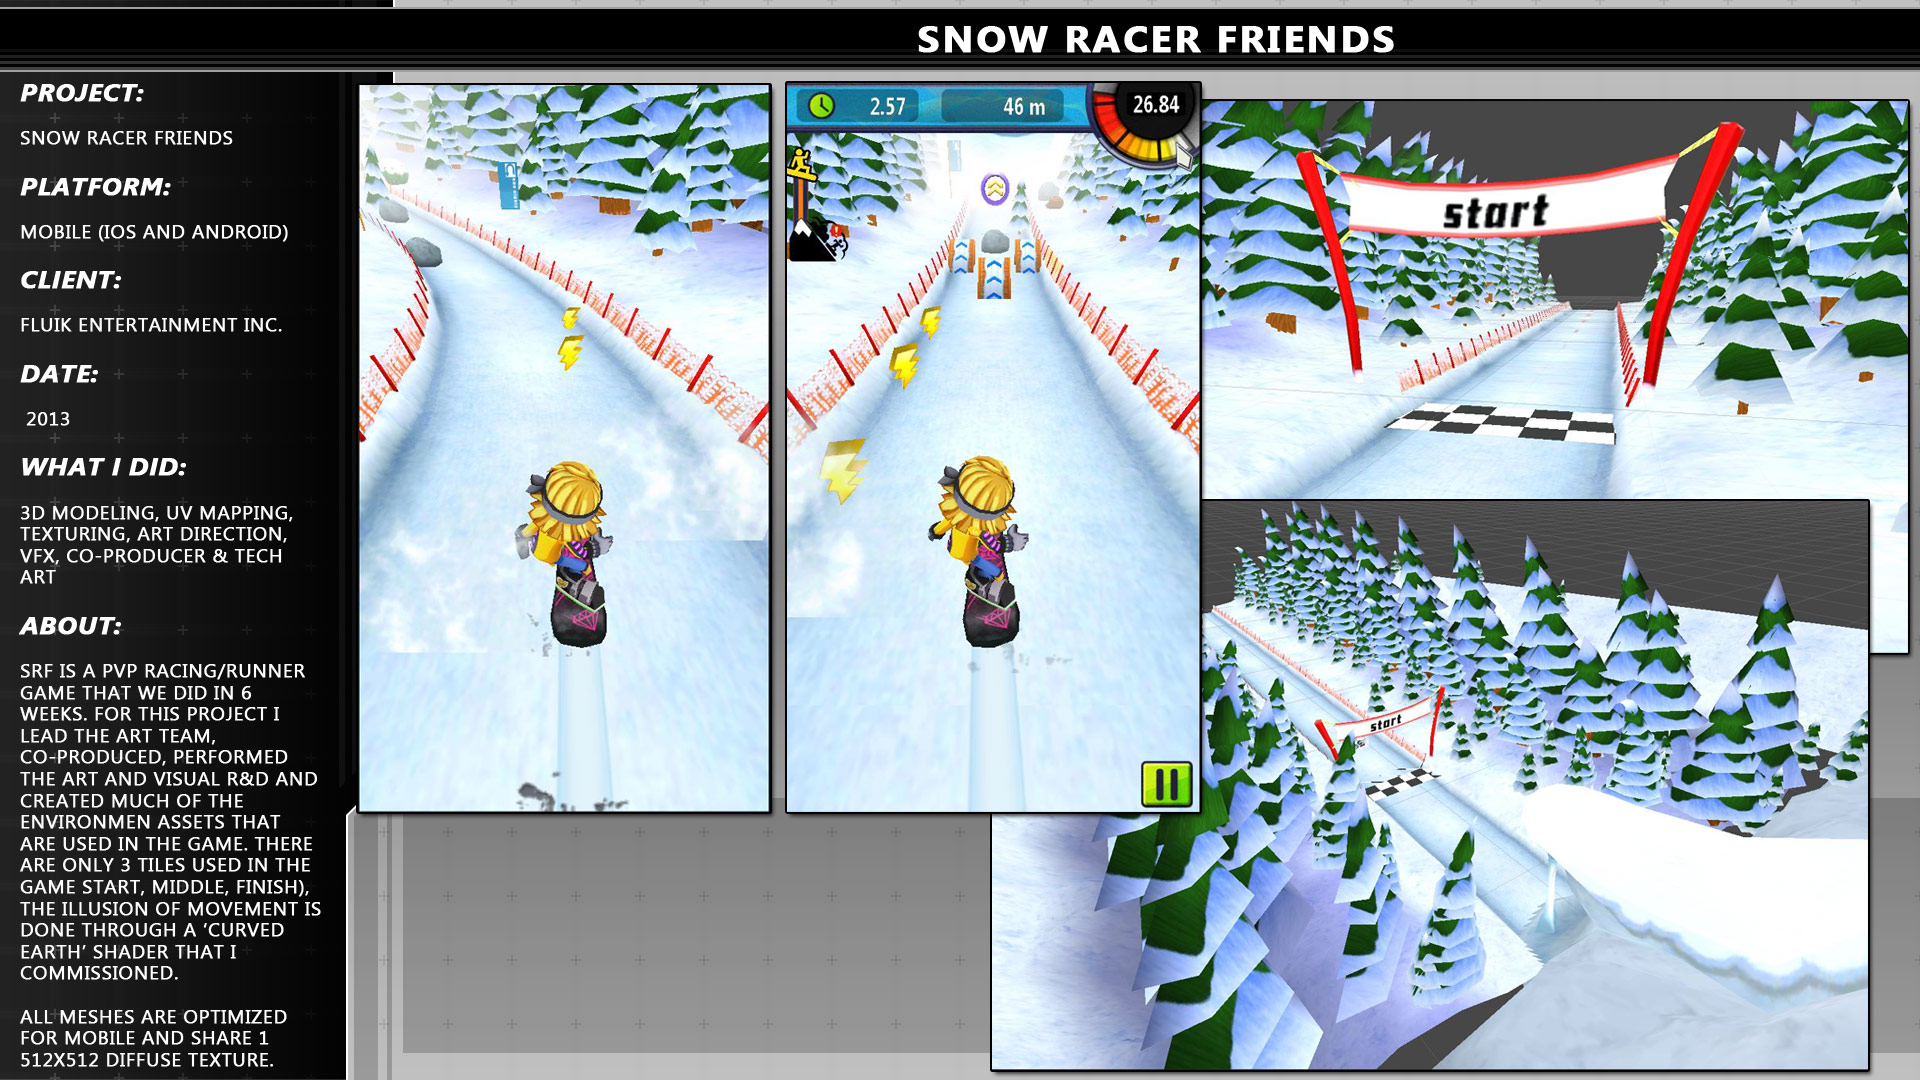 Snow Racer Friends